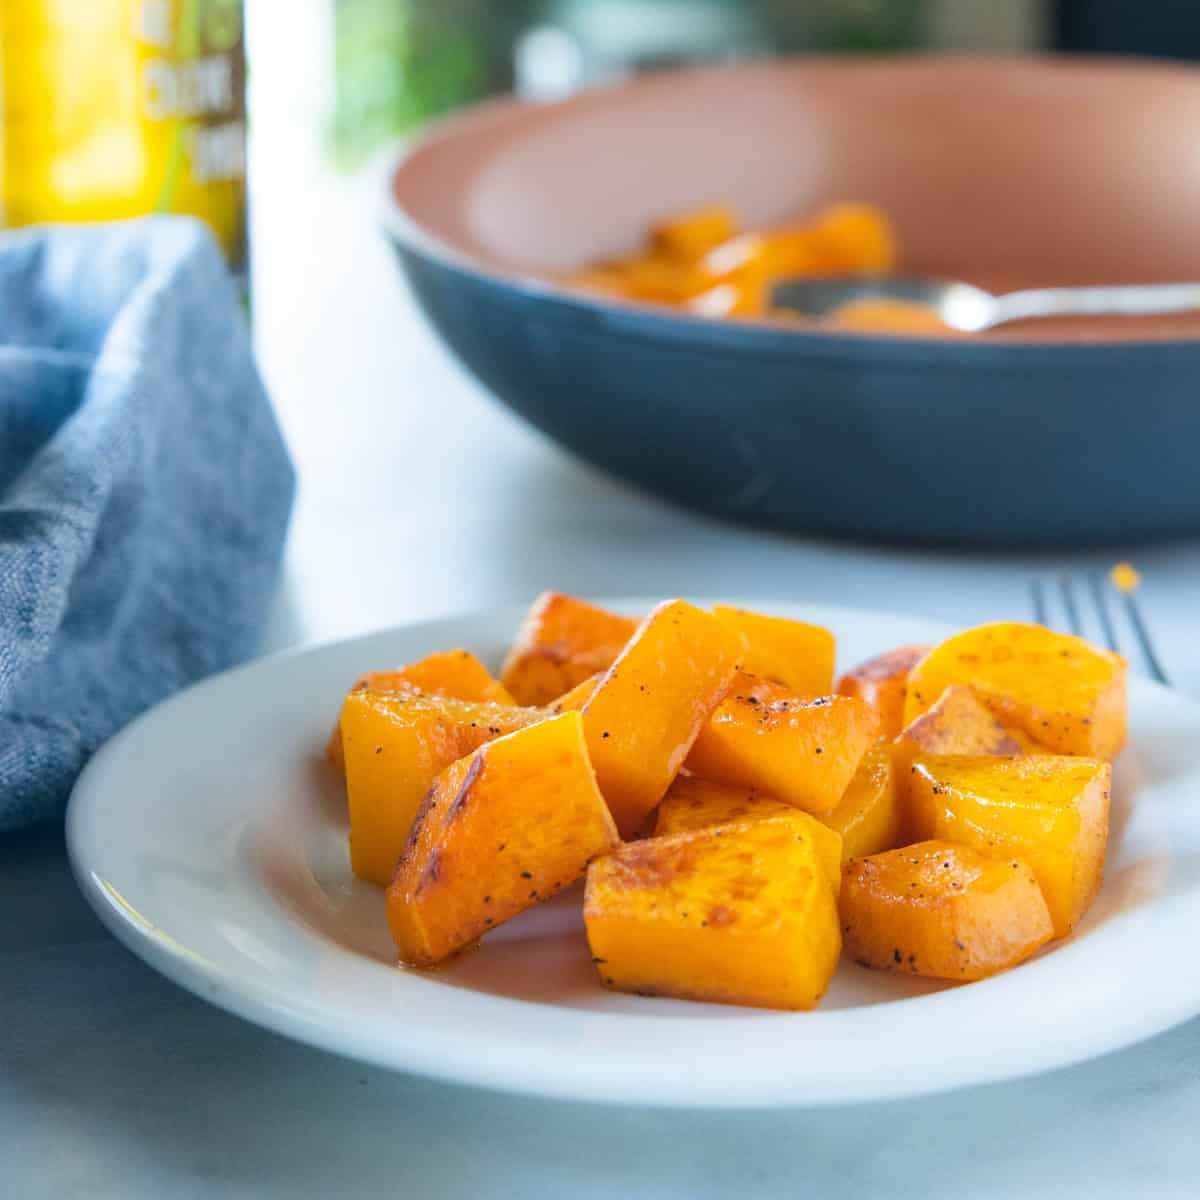 Sauteed butternut squash on a white plate with a fork next to the plate and a large serving bowl filled with sautéed squash behind the white plate.